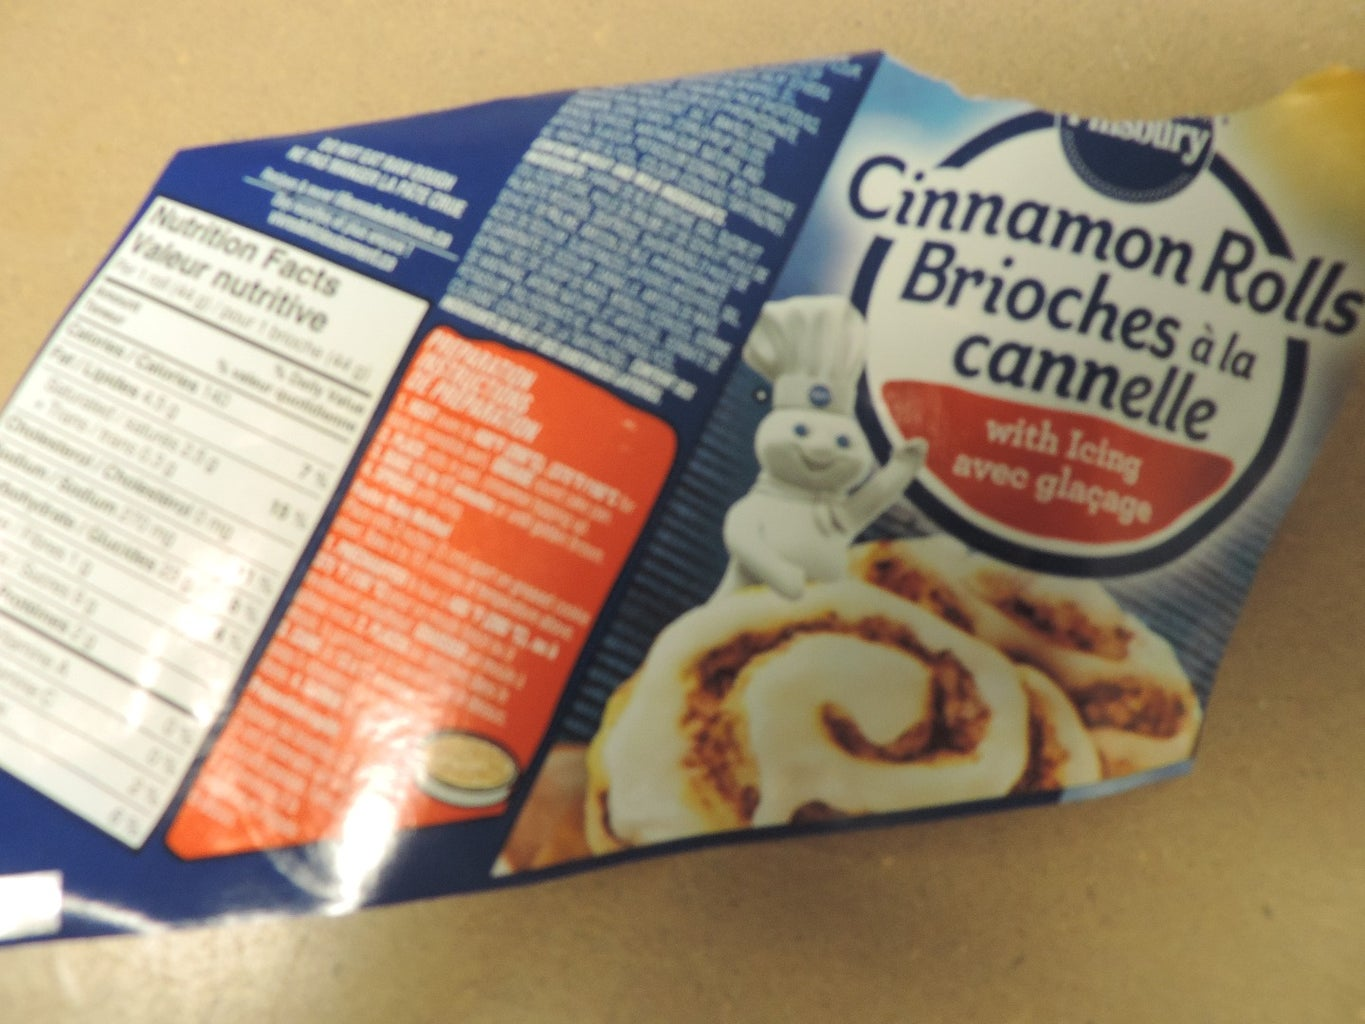 If You Are Craving a Quick Snack of the Cinnamon Bun Variety